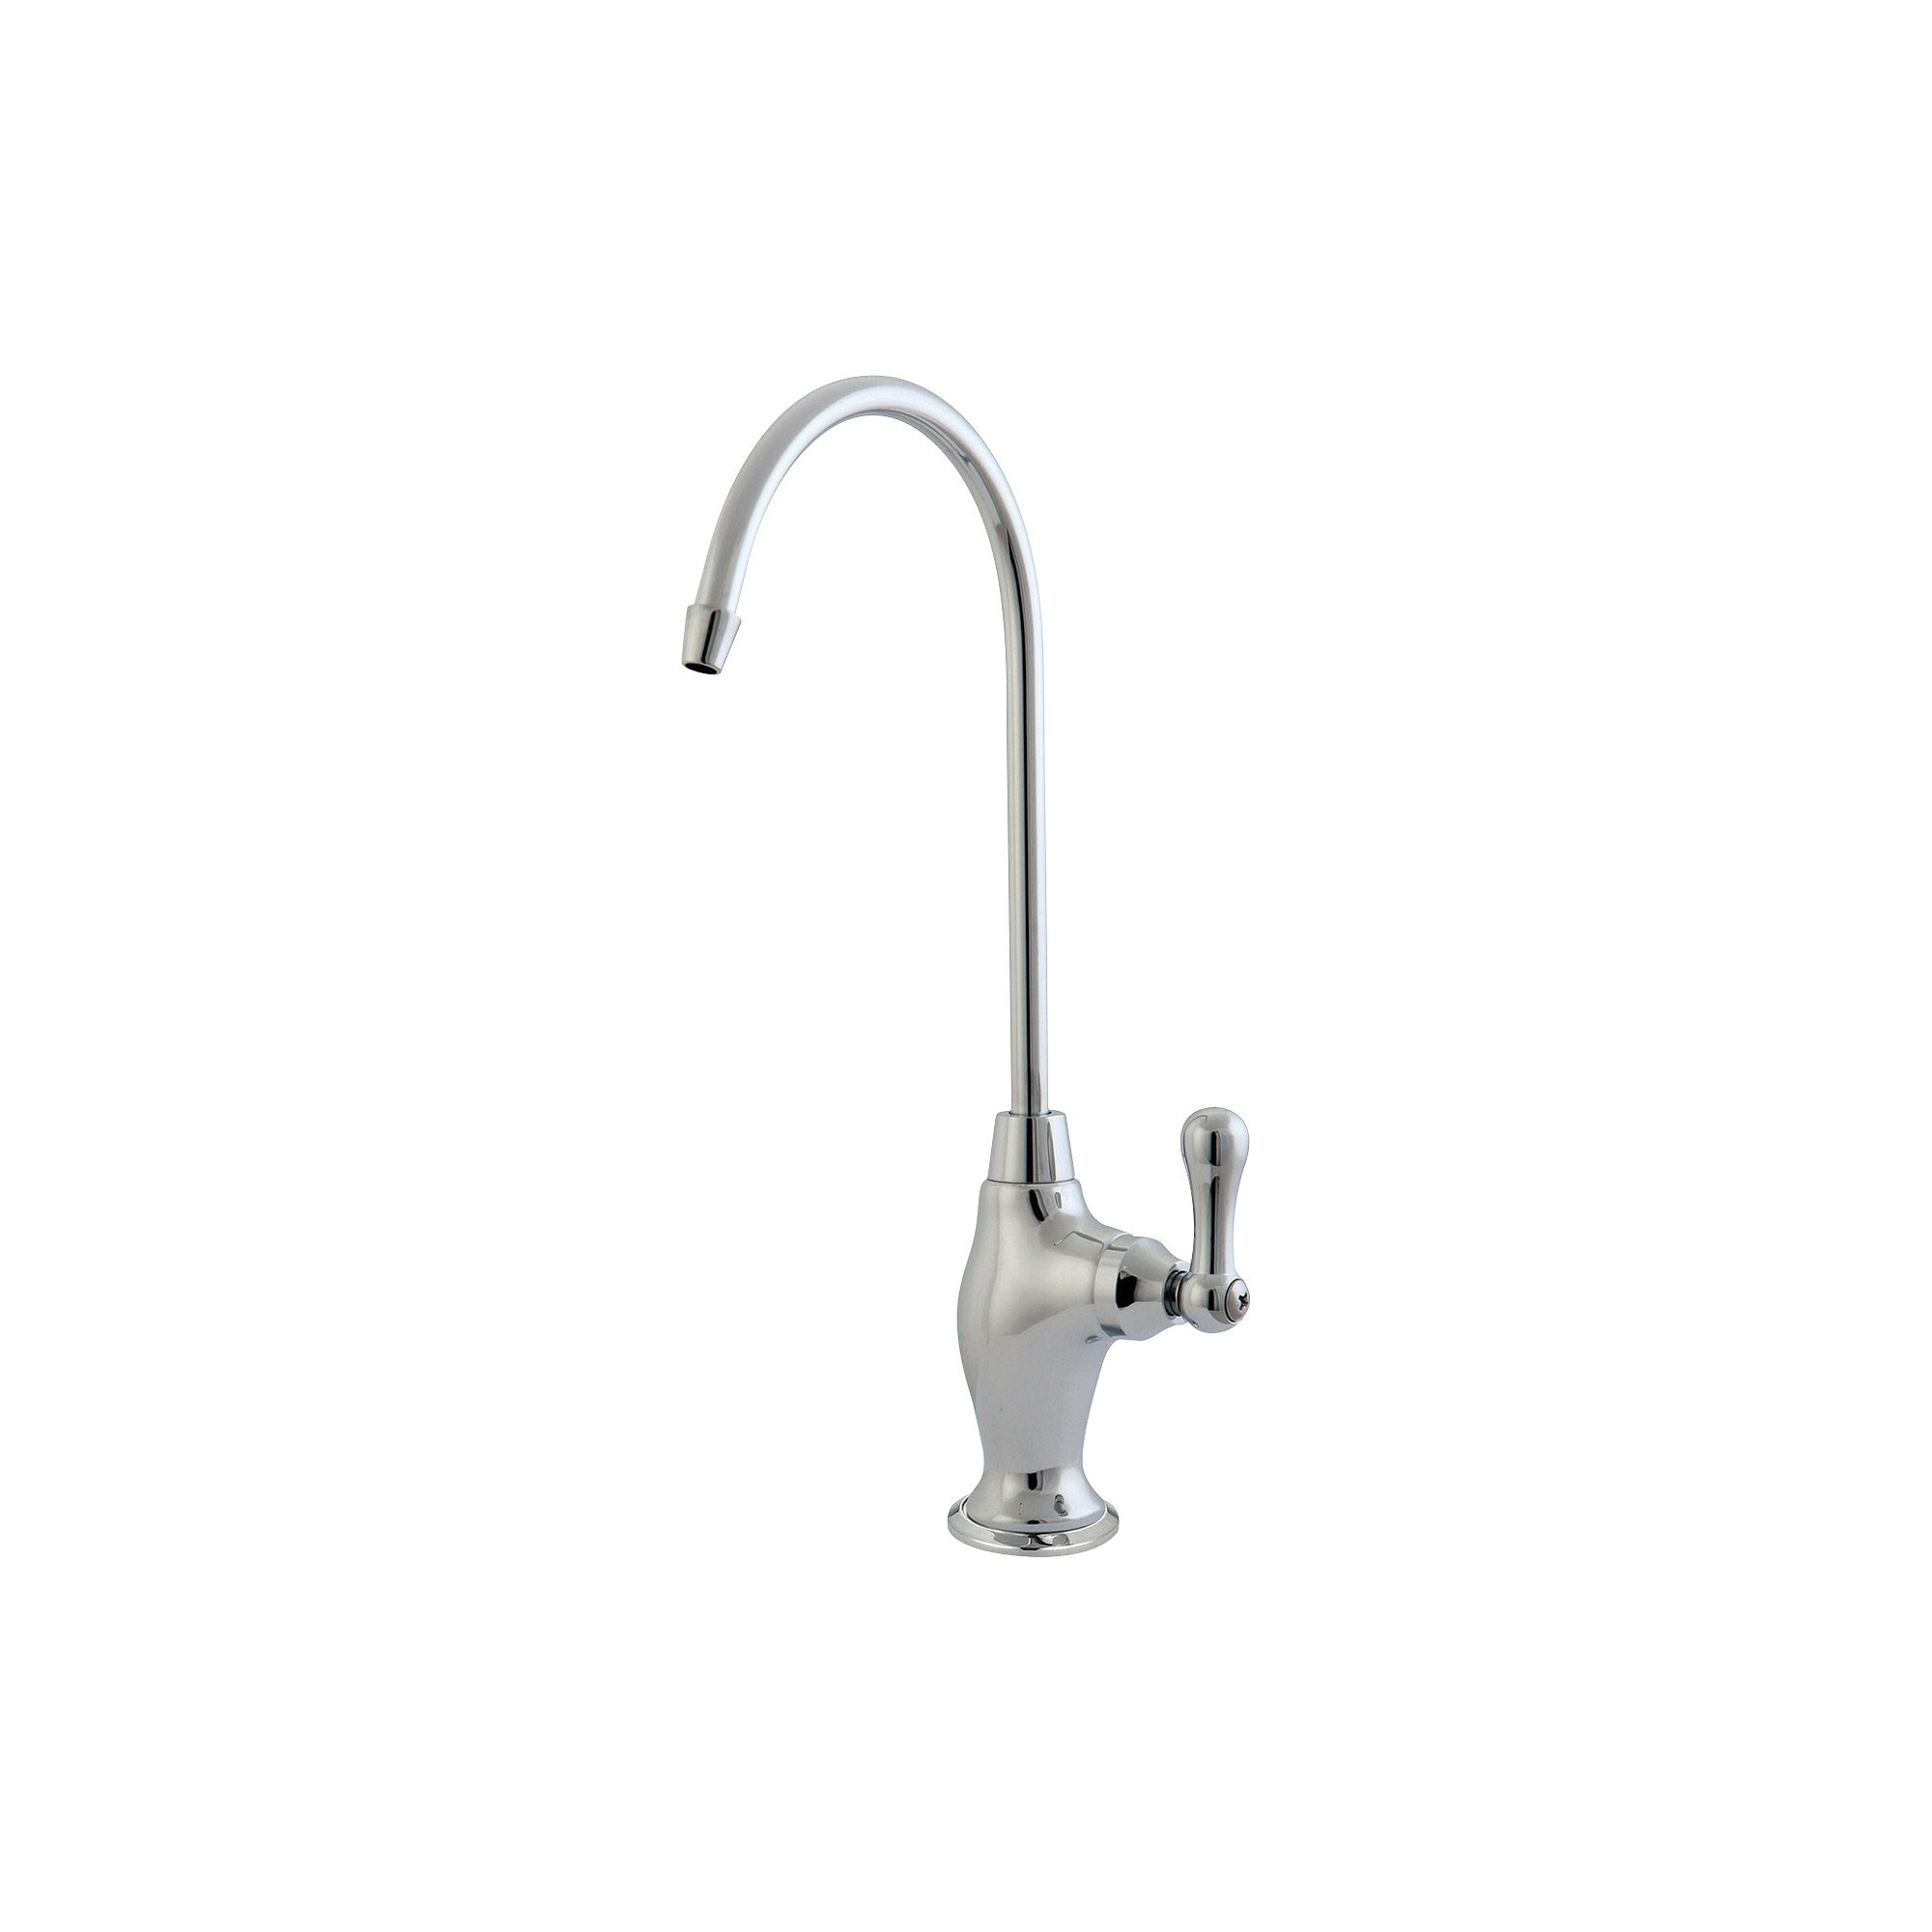 Restoration Water Filter Kitchen Faucet Chrome - Kingston Brass